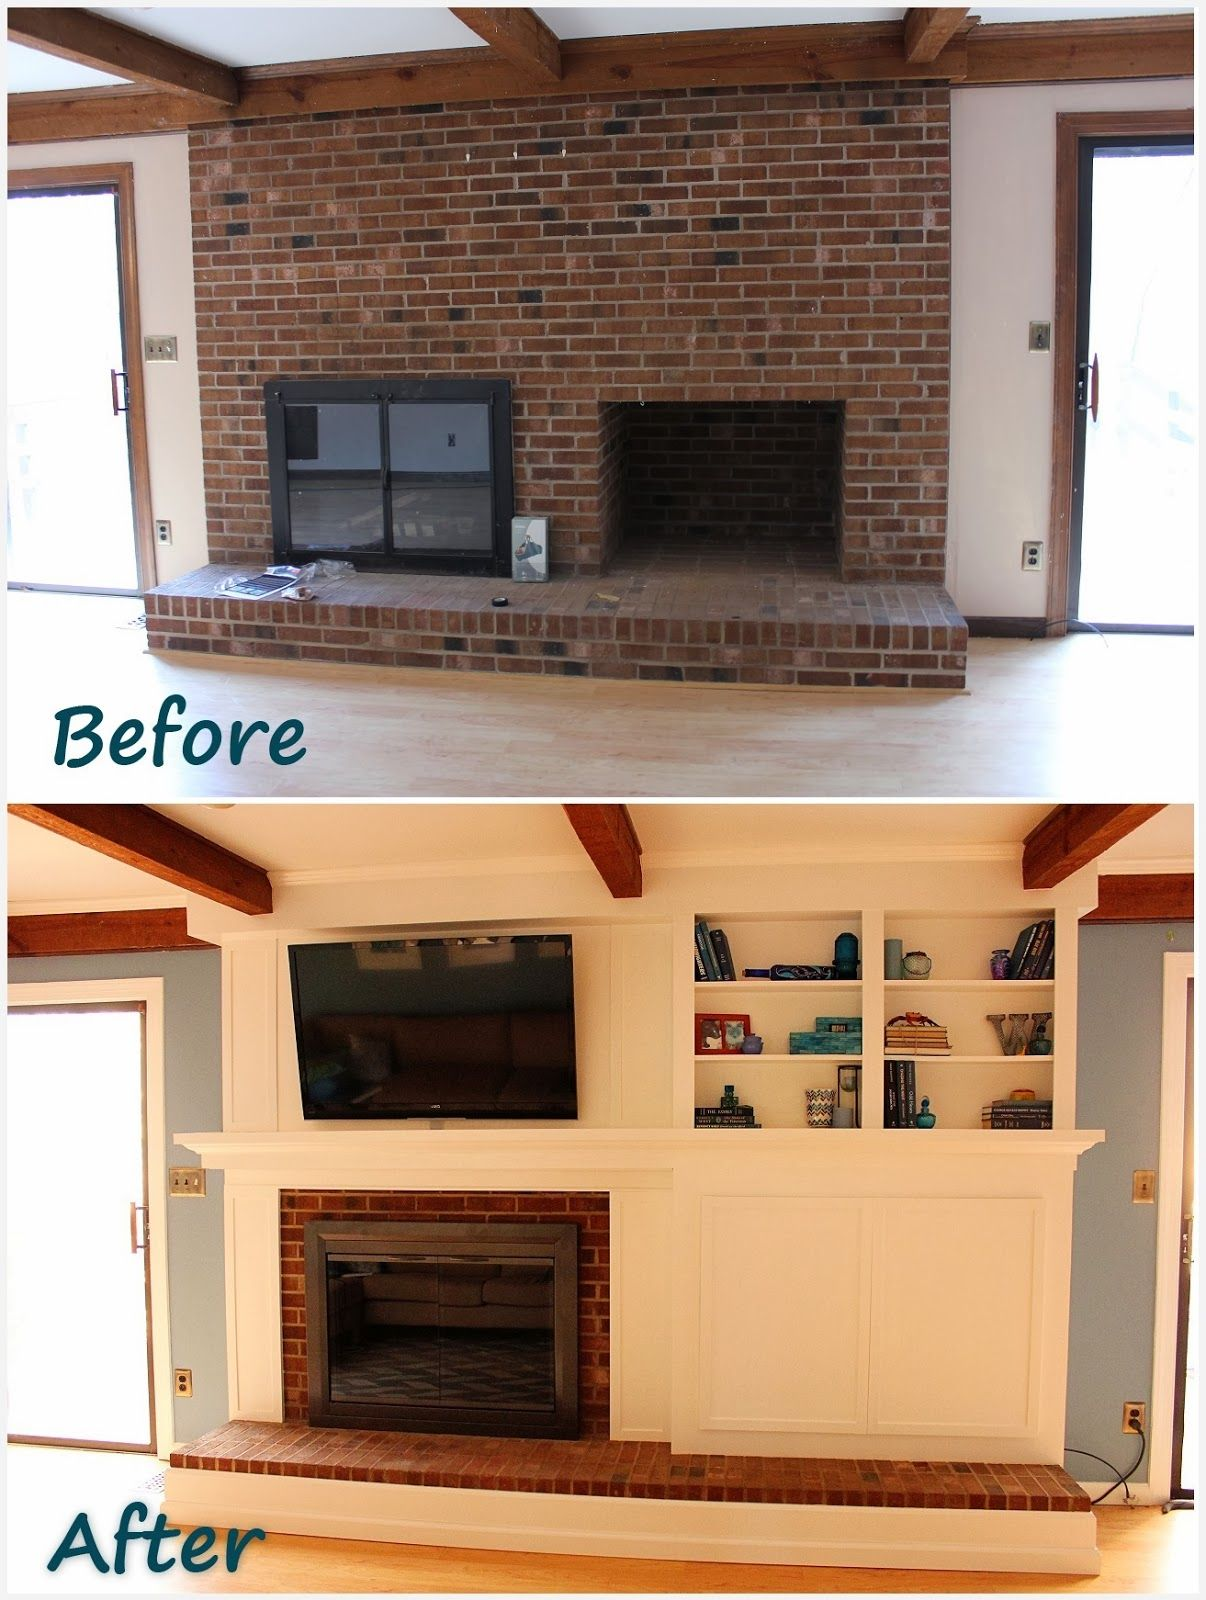 Fireplace Remodel: DIY a fireplace facade to cover an old